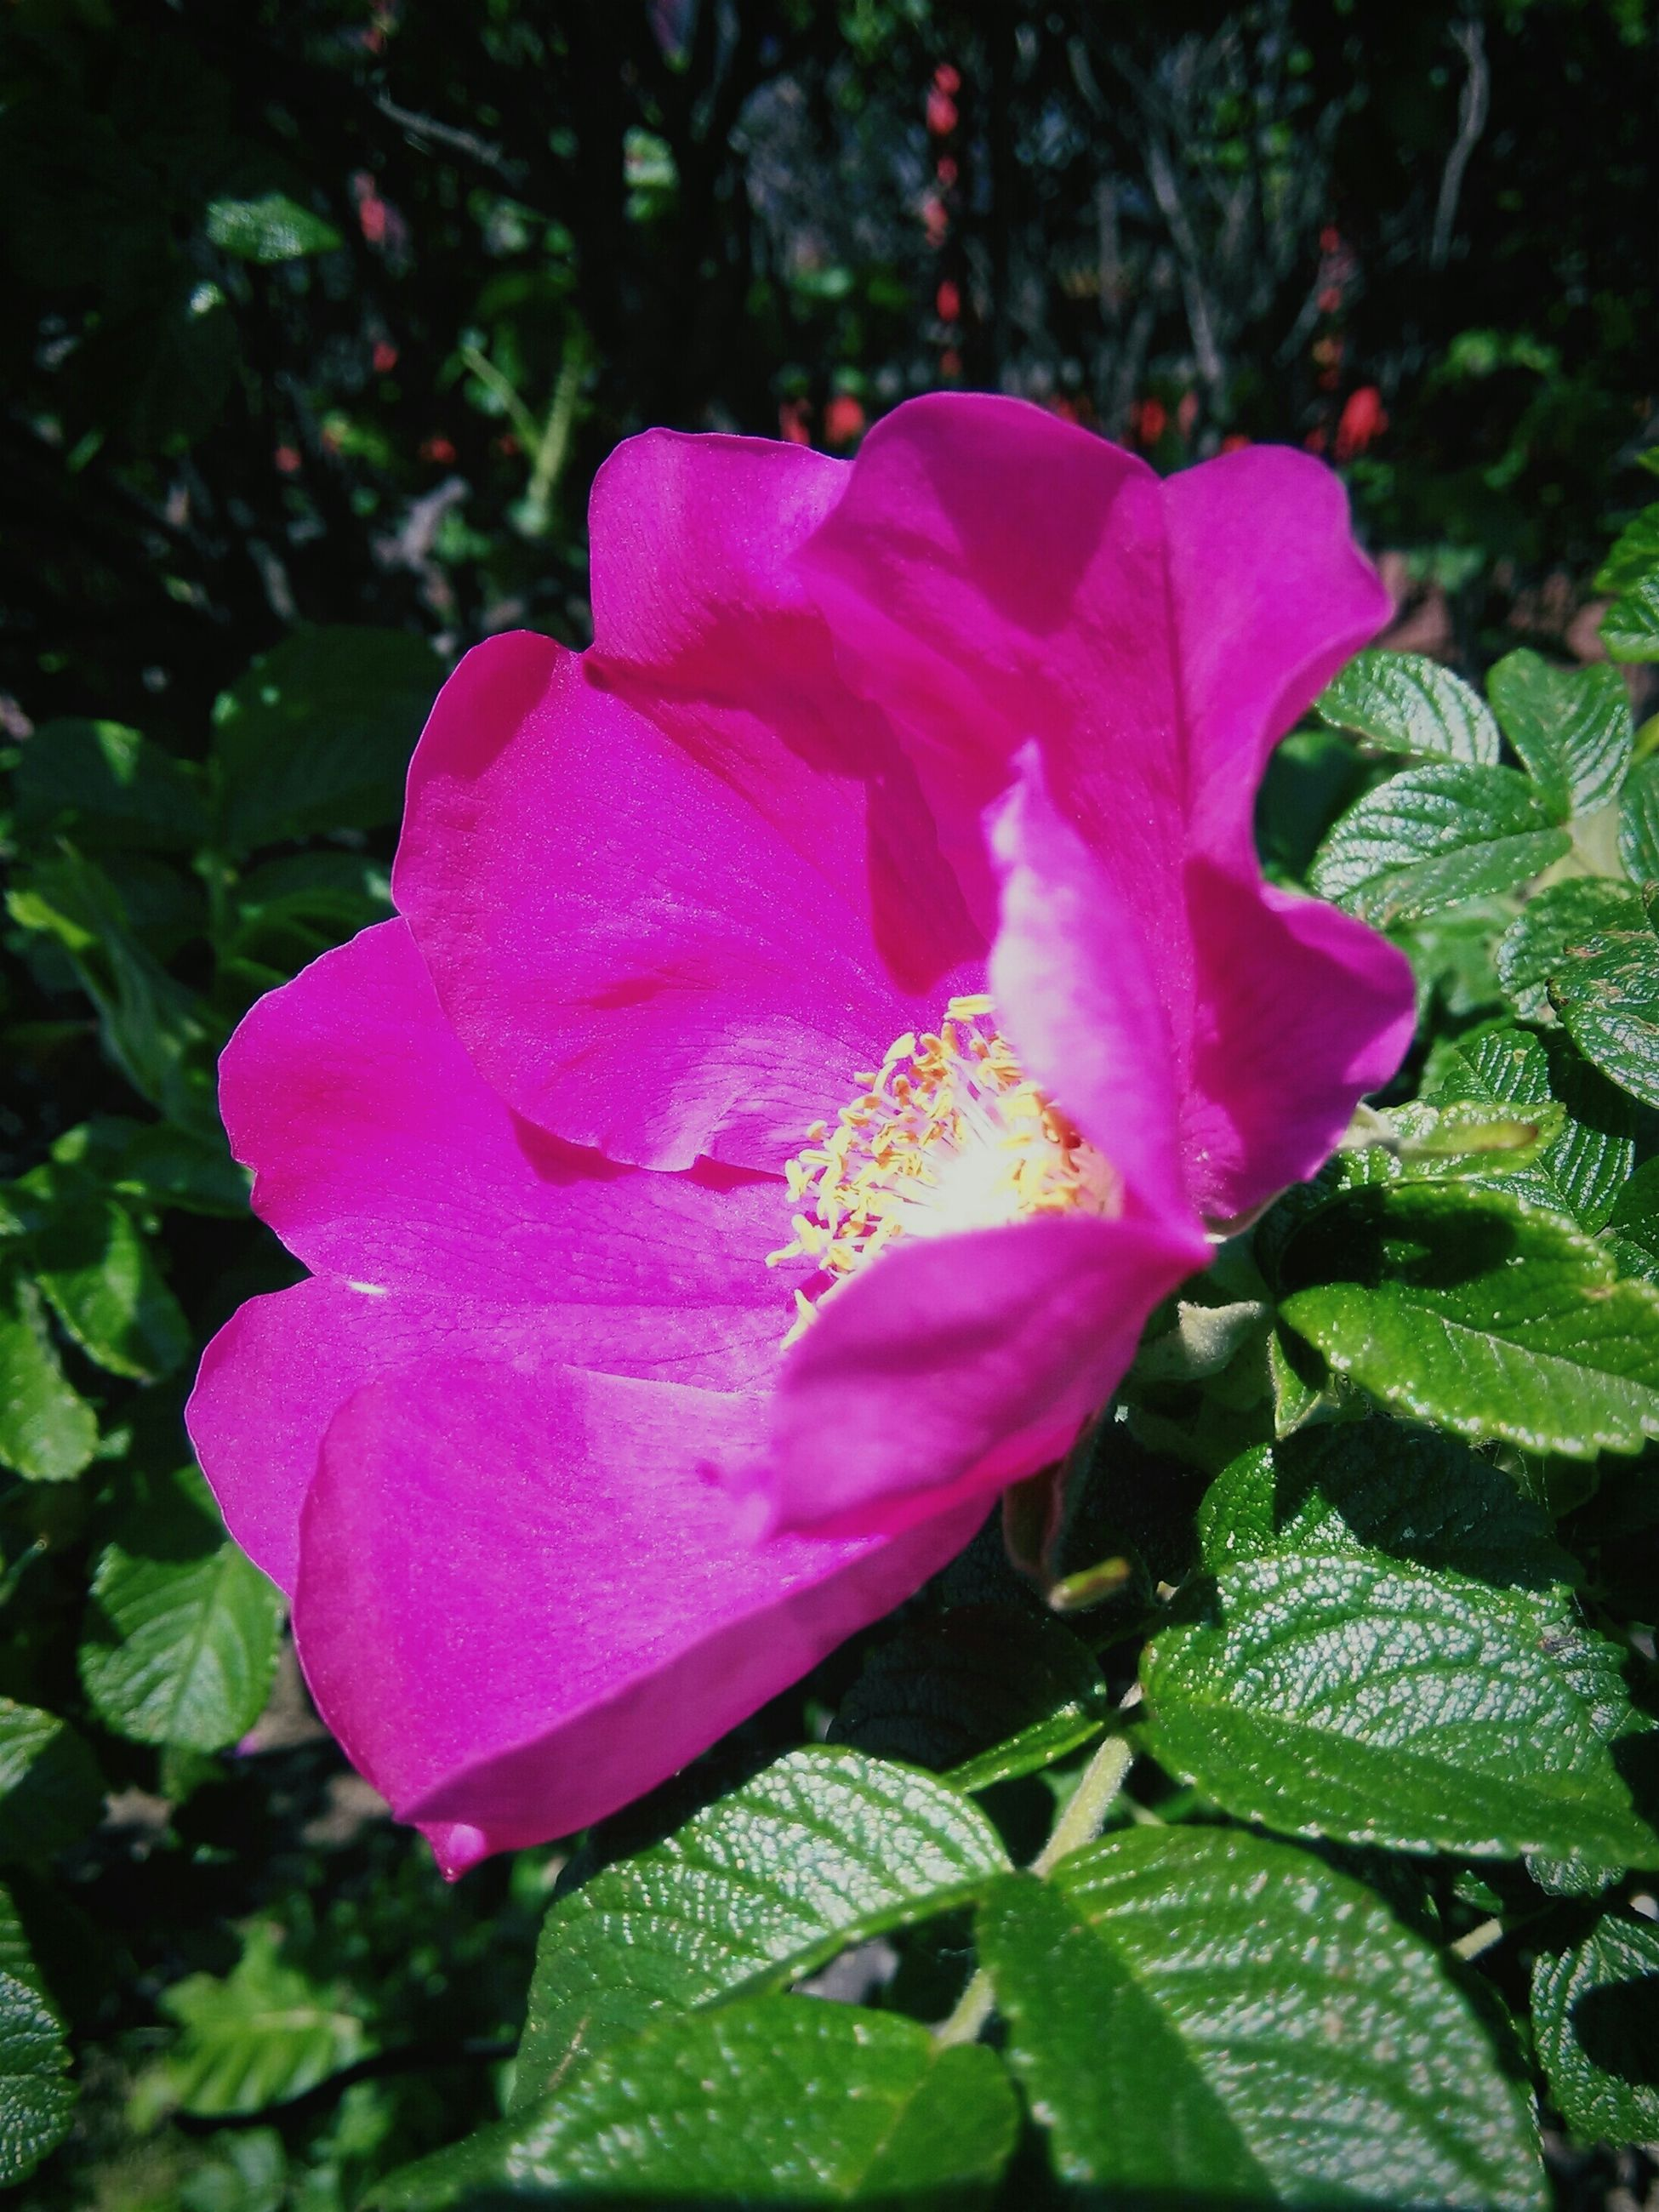 flower, petal, flower head, freshness, fragility, growth, pink color, beauty in nature, close-up, leaf, blooming, single flower, nature, plant, focus on foreground, in bloom, rose - flower, park - man made space, day, outdoors